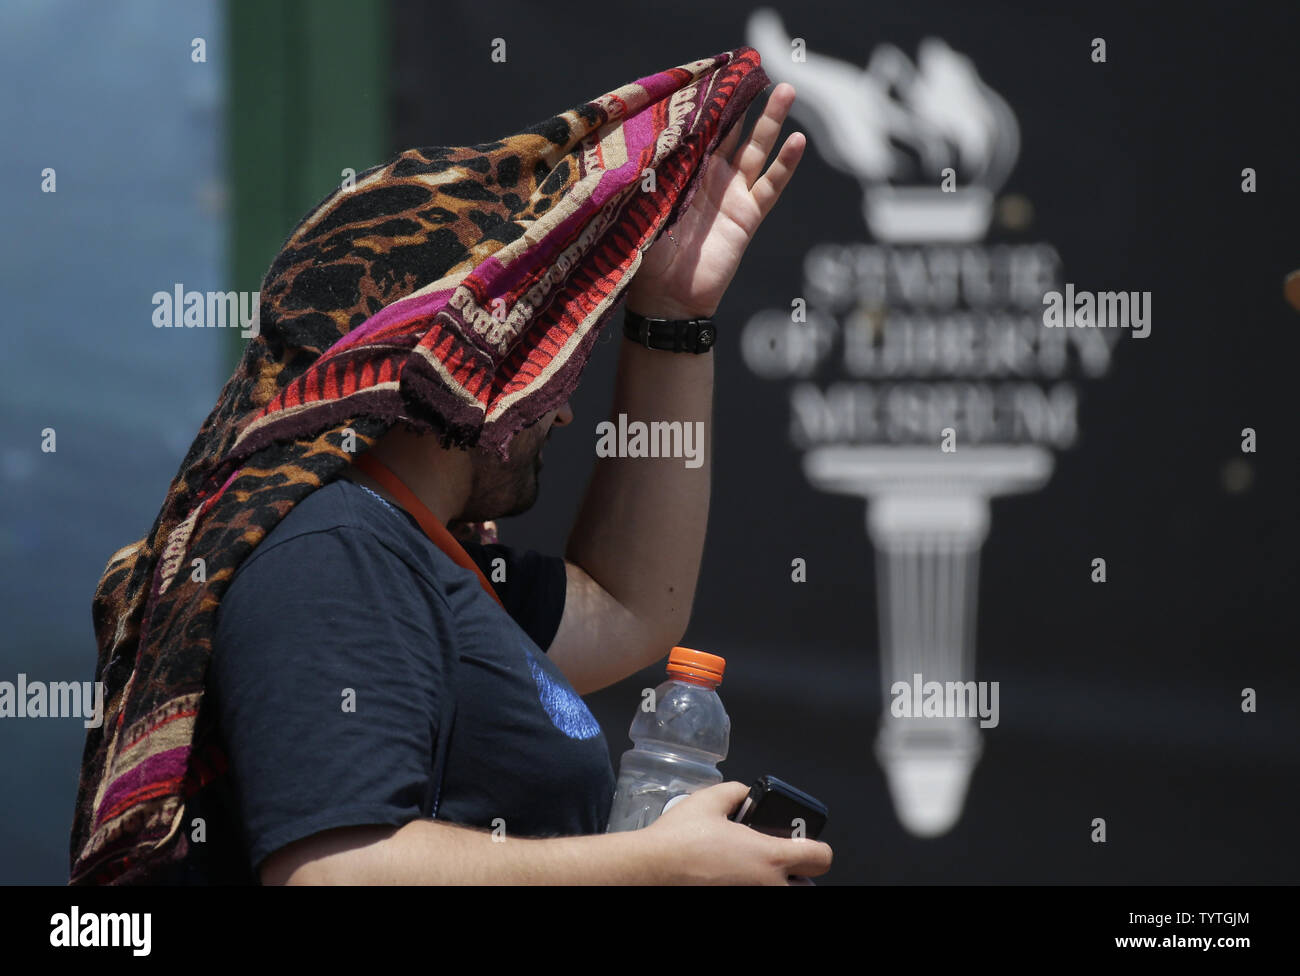 A man covers his head to seek protection from the sun in temperatures above 95 degrees on Liberty Island 2 days before Independence Day and the 4th of July in New York City on July 2, 2018. Temperatures have topped 90 degrees for a fourth straight day in New York City on Monday extending the city's heat wave.     Photo by John Angelillo/UPI Stock Photo